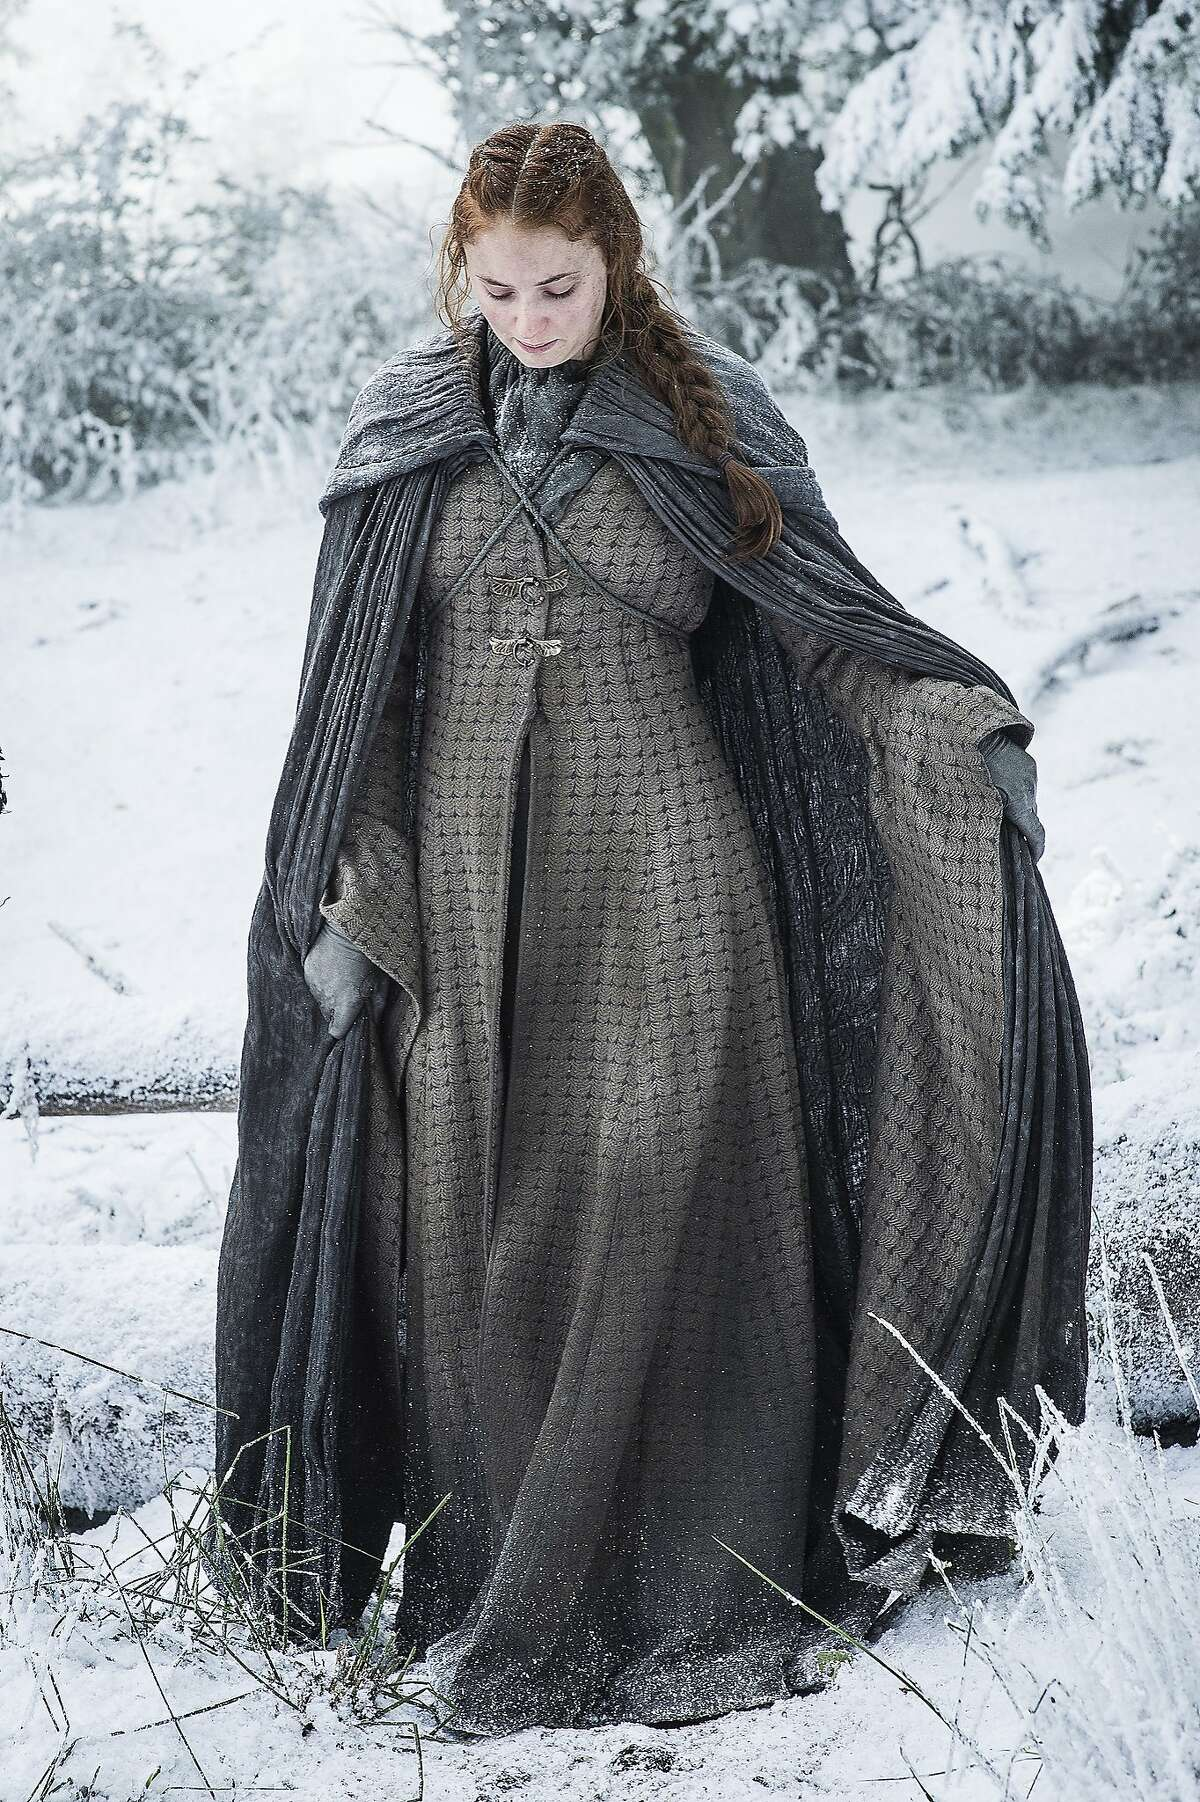 Sophie Turner in a scene from season six of